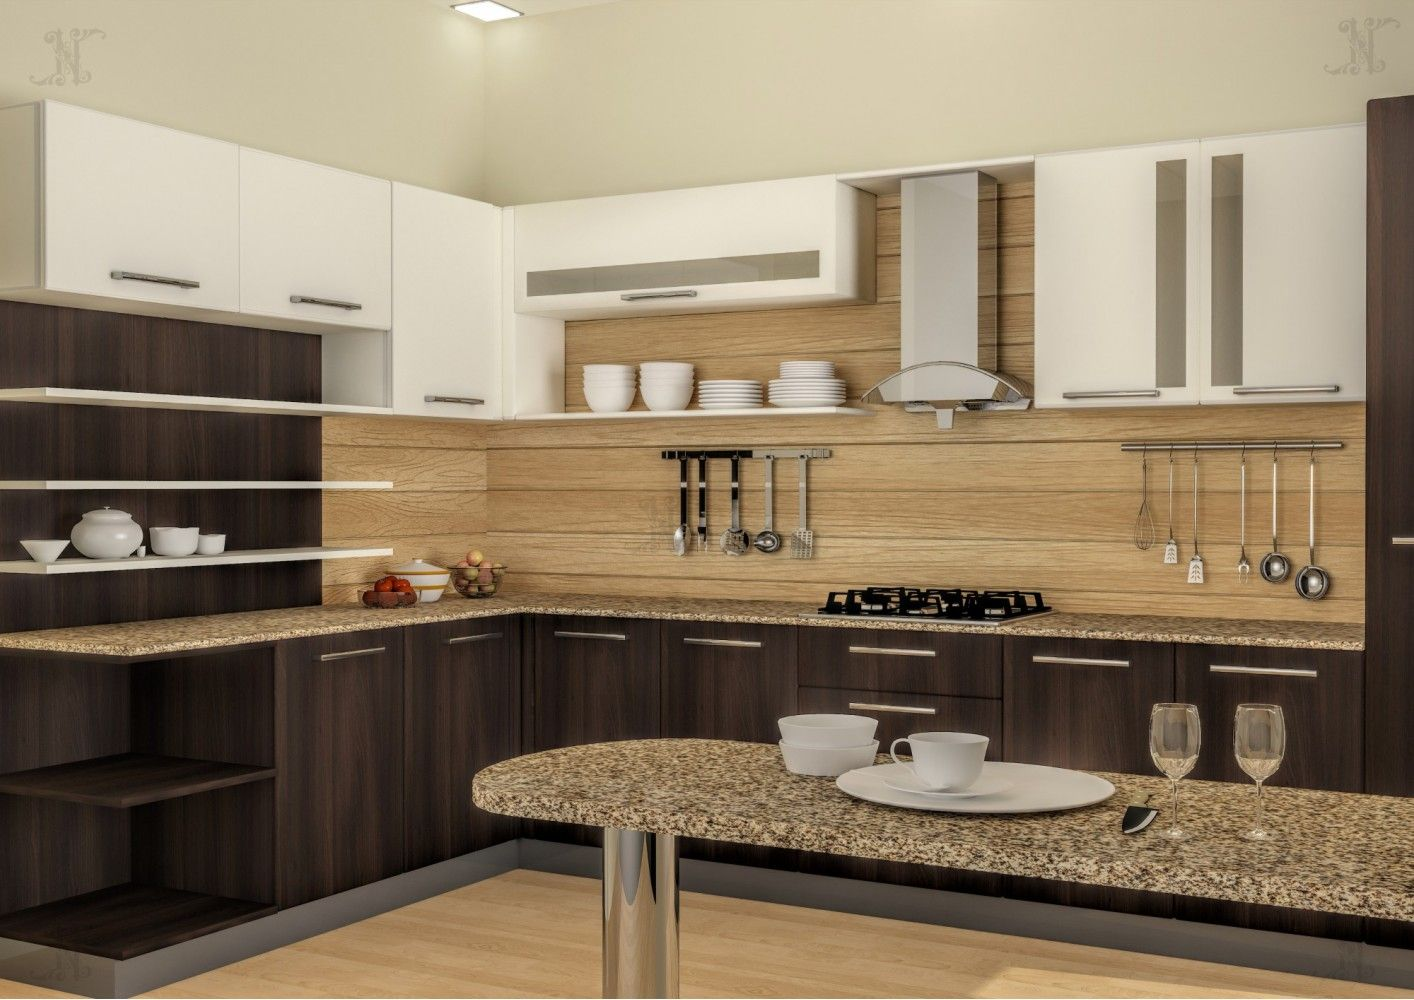 Modular Kitchen Design For L Shape Cortesa L Shape Modular Kitchen Atra Jaya Pinterest